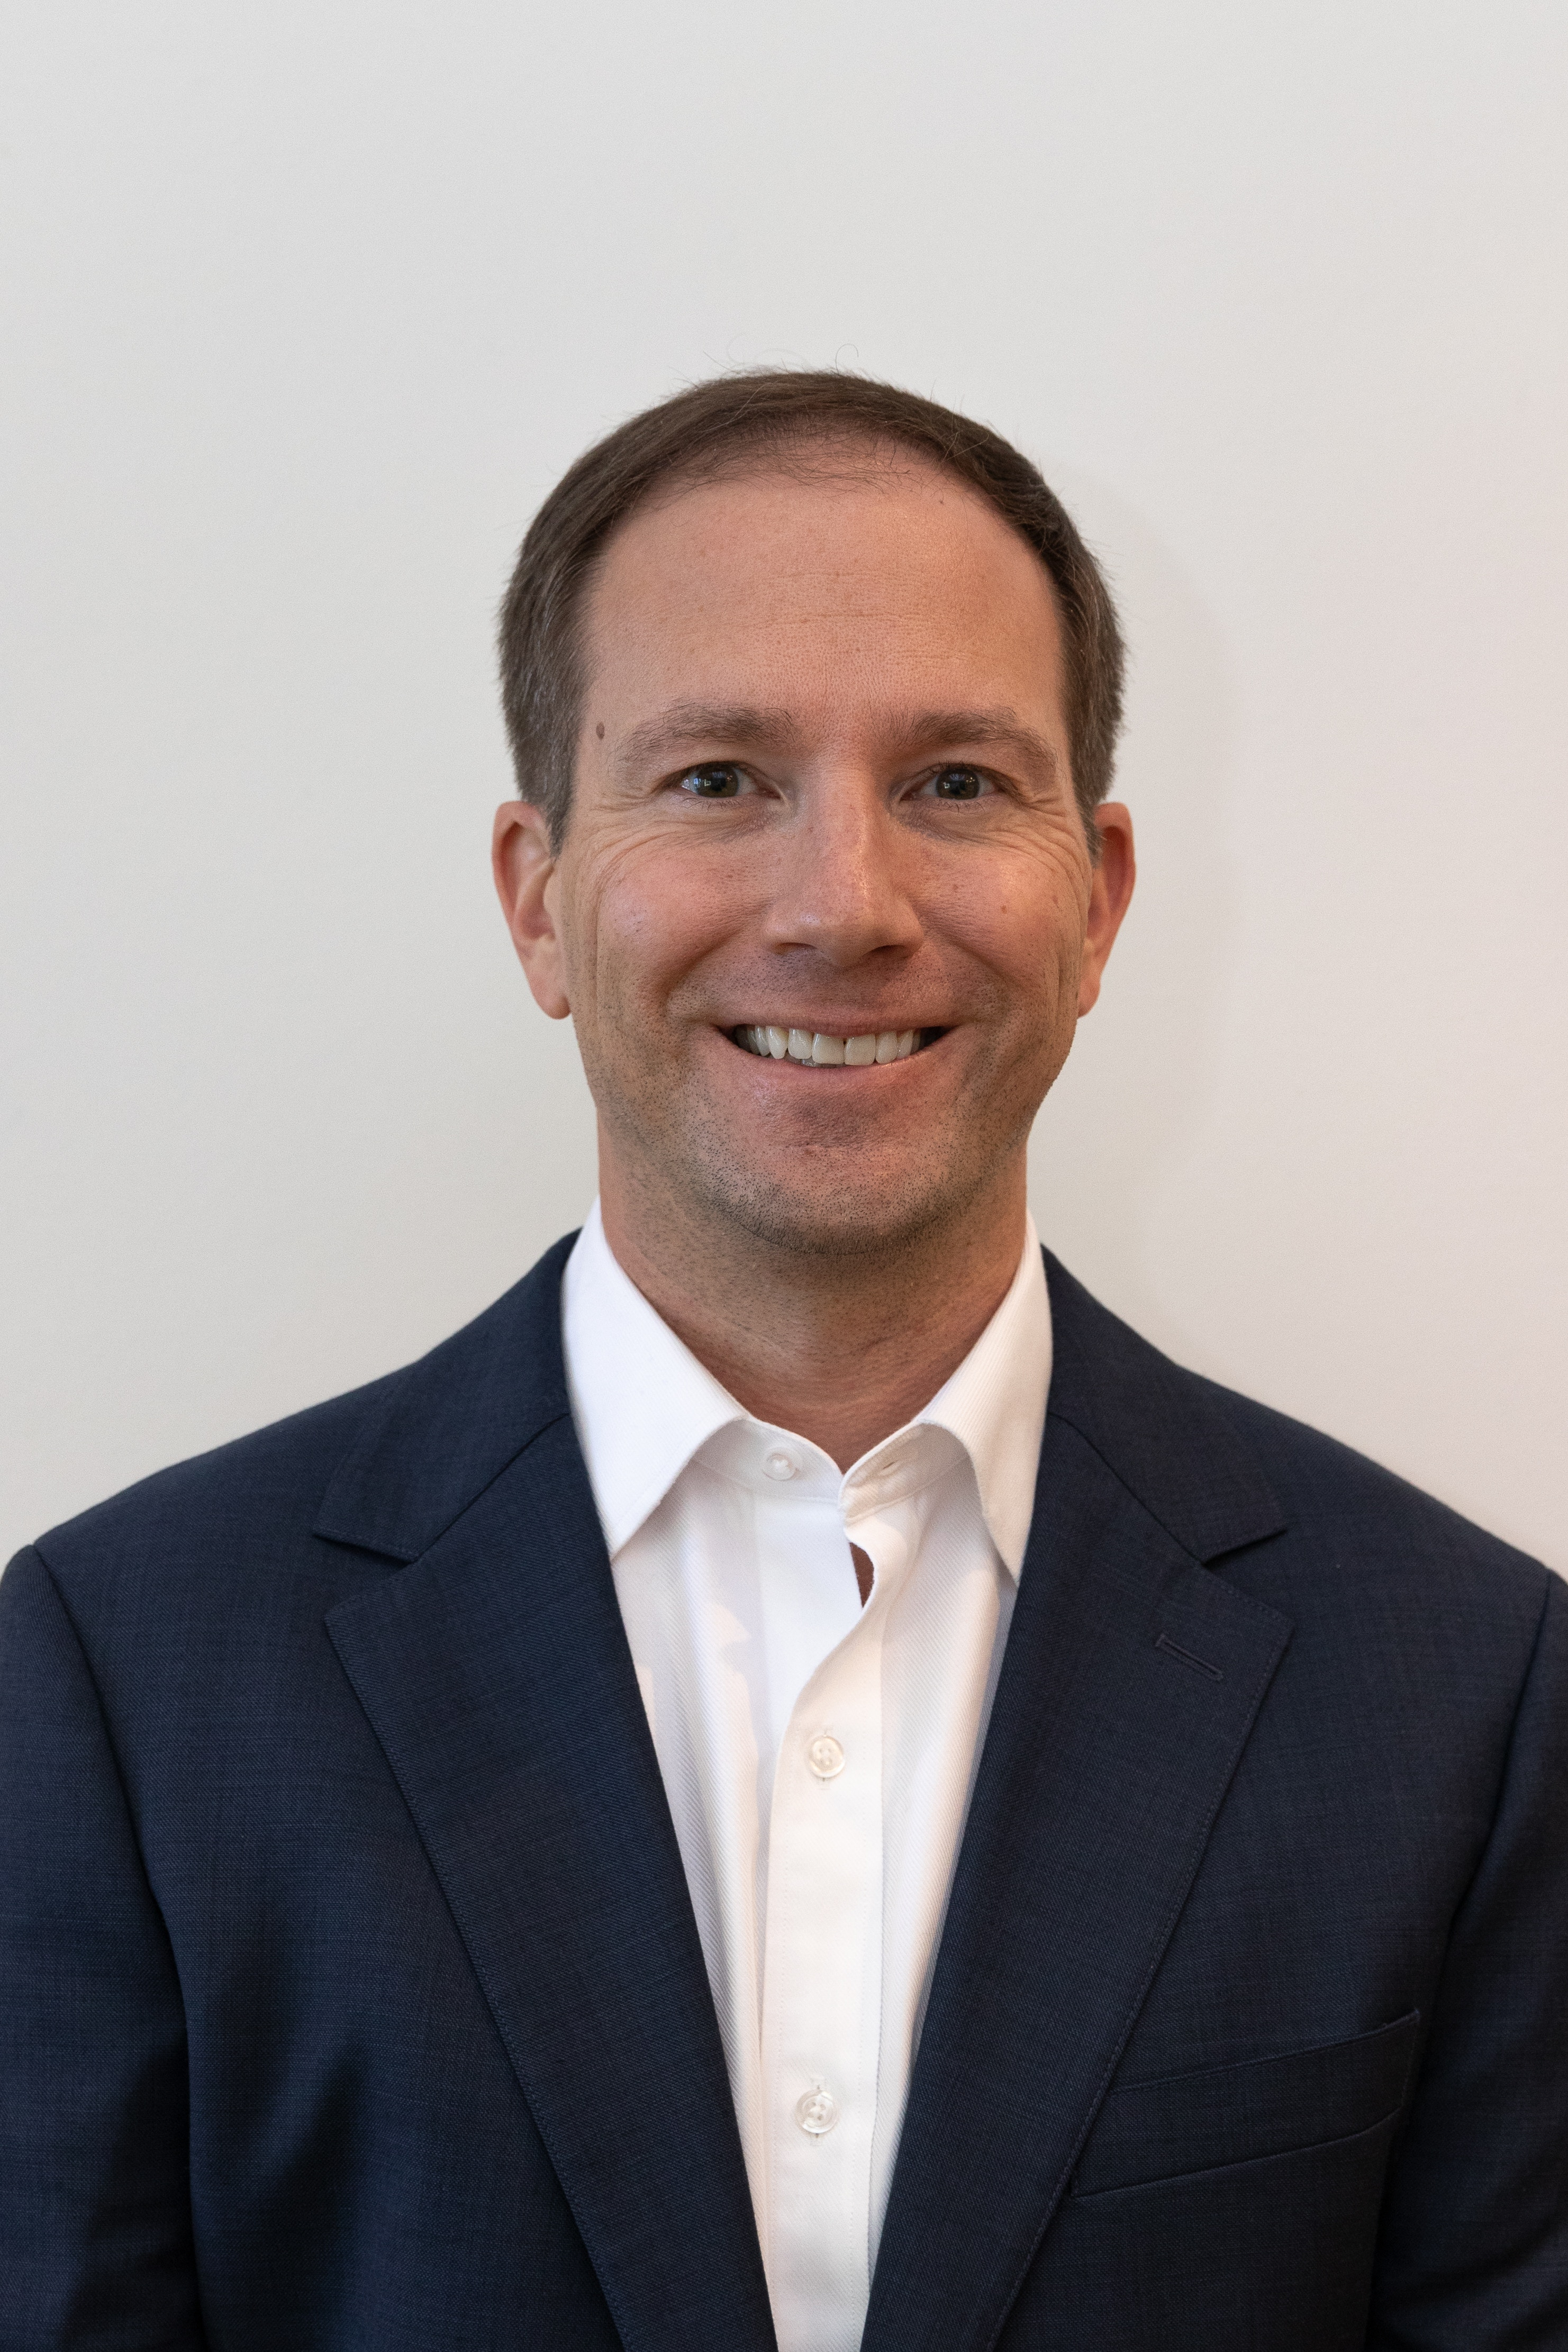 Bob Gallagher, Chief Operating Officer - Leadership Team